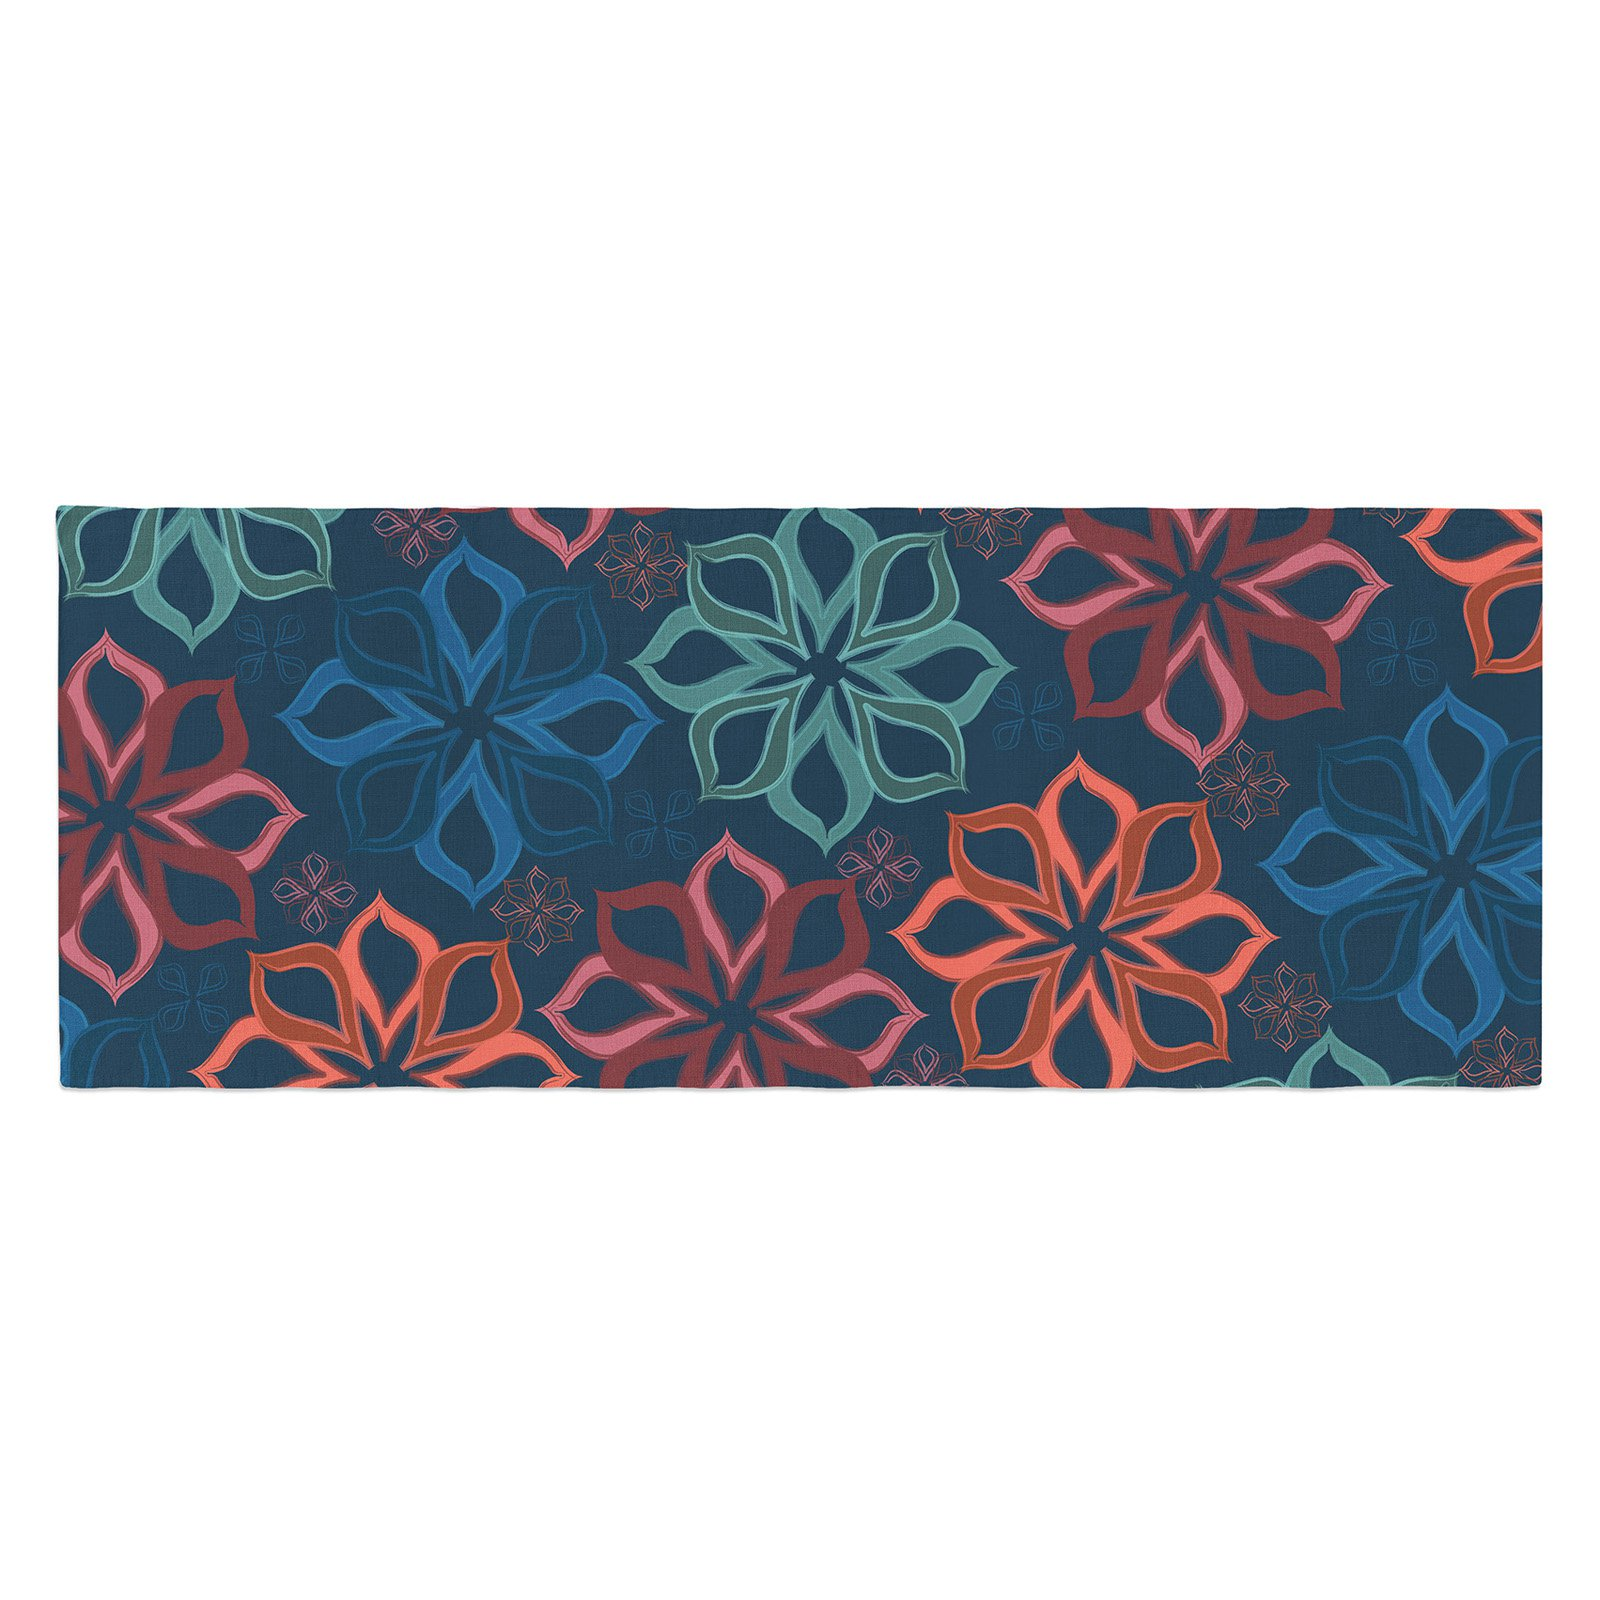 Jolene Heckman Charm Flowers Bed Runner by Kess InHouse